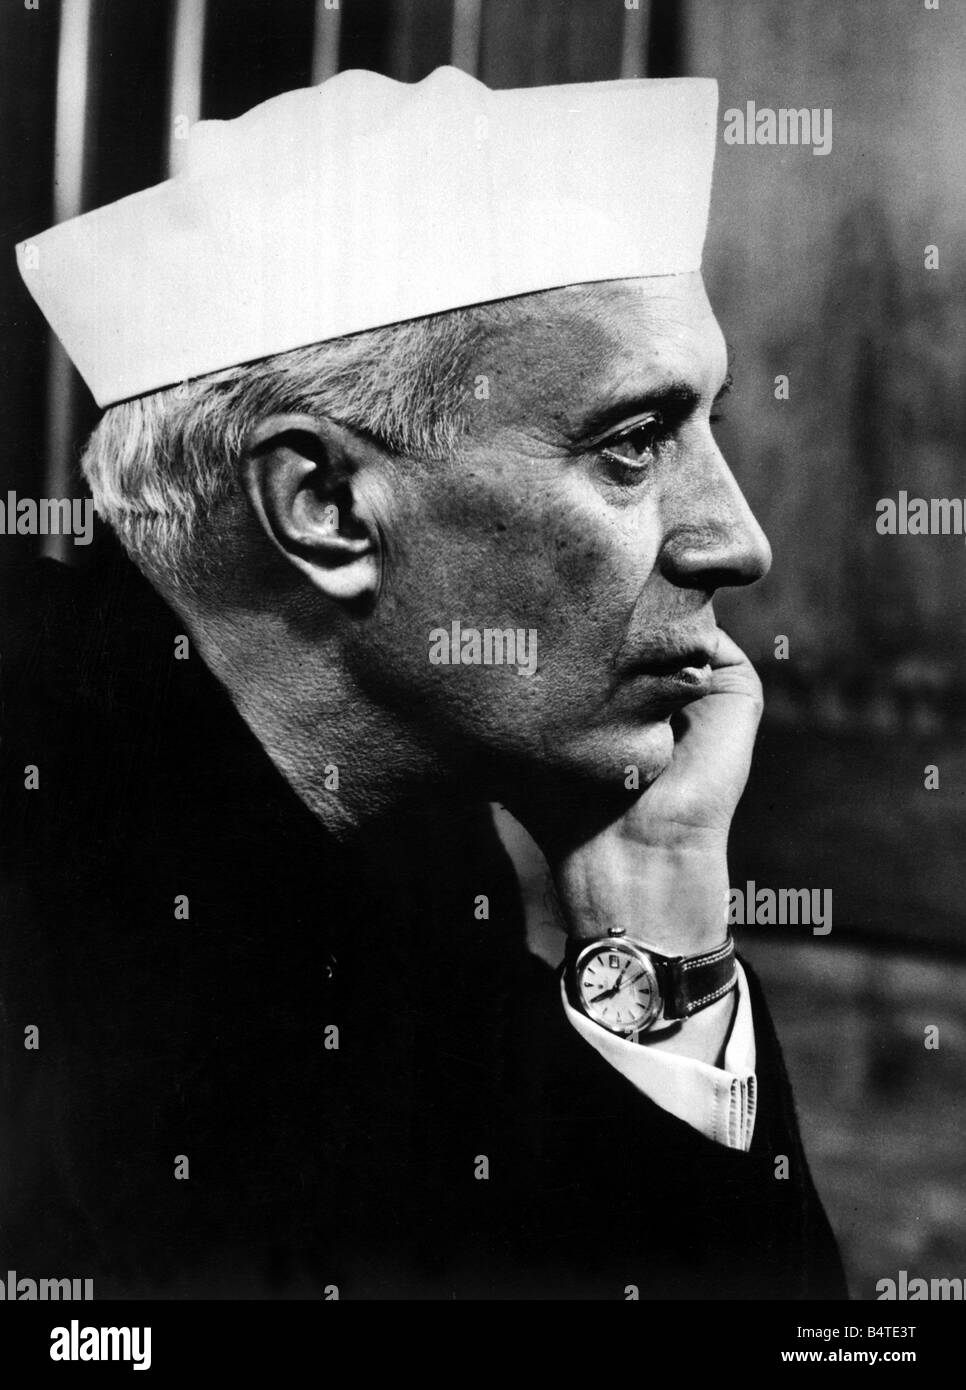 Pandit Jawaharlal Nehru Prime Minister of India Indian High Commissioner January 1973 - Stock Image